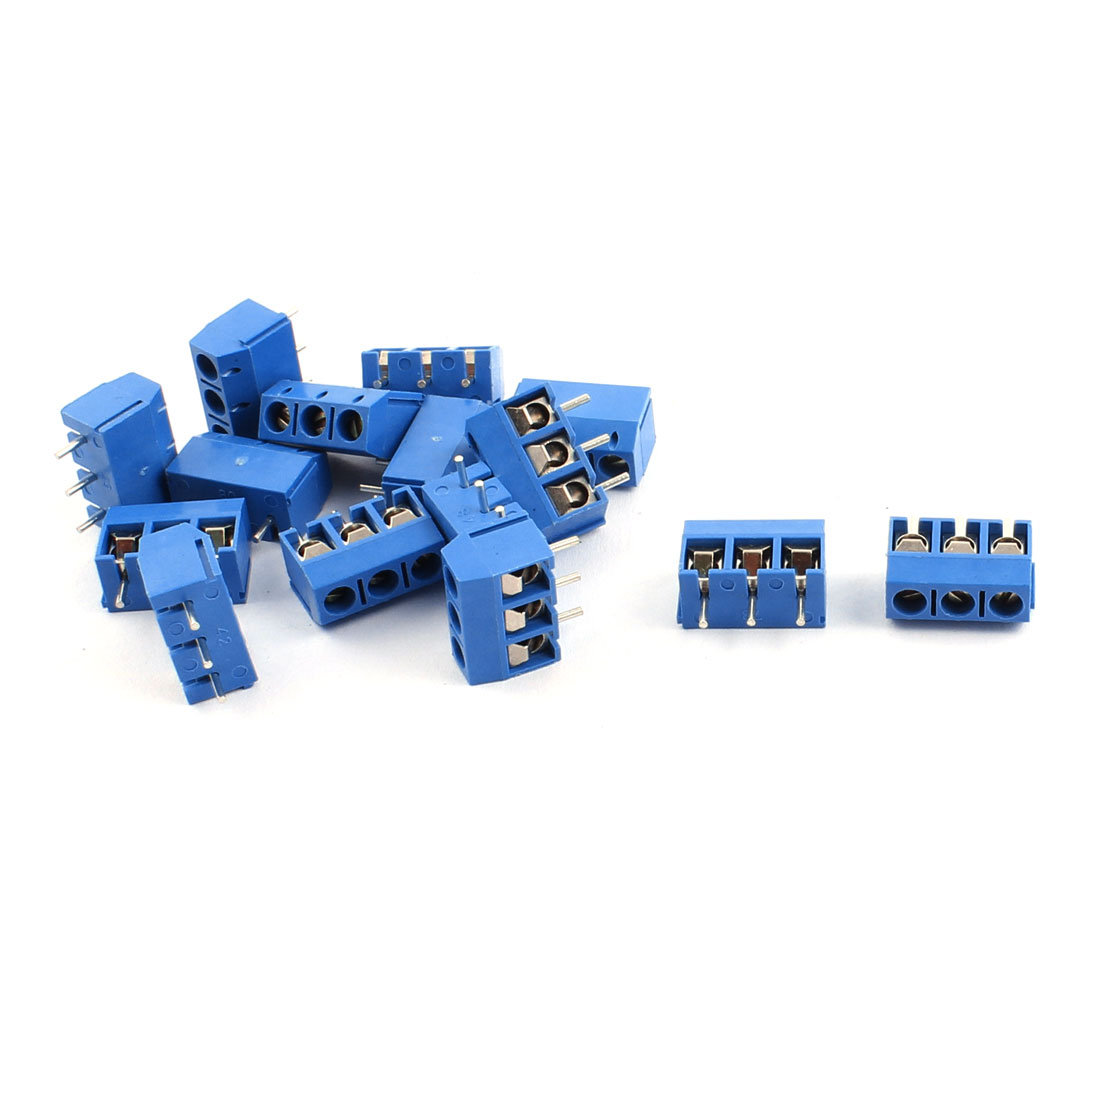 15pcs 300V 16A 3 Position 5.0mm Pitch Pluggable PCB Screw Terminal Block Cable Connector for AWG14-22 Wire